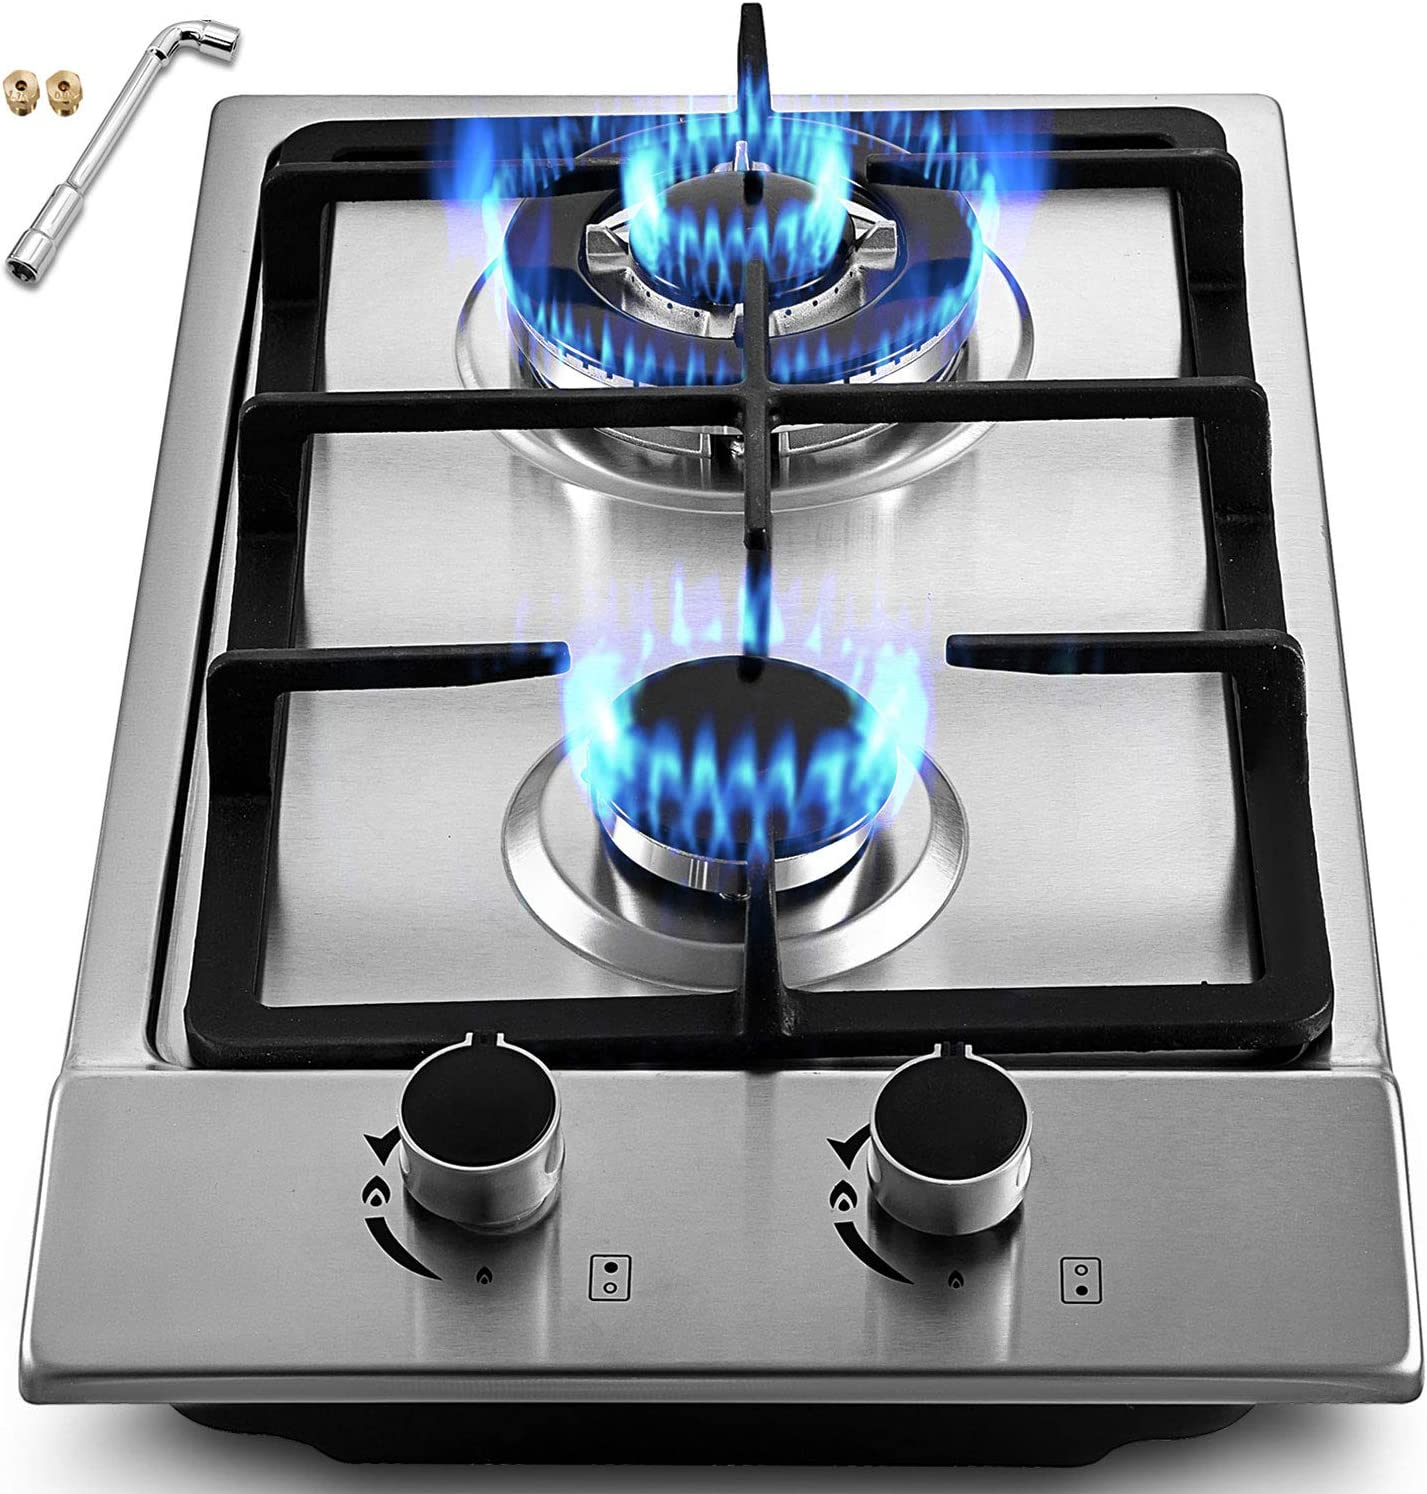 OASD Built in Gas Cooktop 12x20IN Gas Stove Cooktop Stainless Steel Cooktop Gas Hob with Liquid Propane Conversion Kit Thermocouple Protection (12x20)